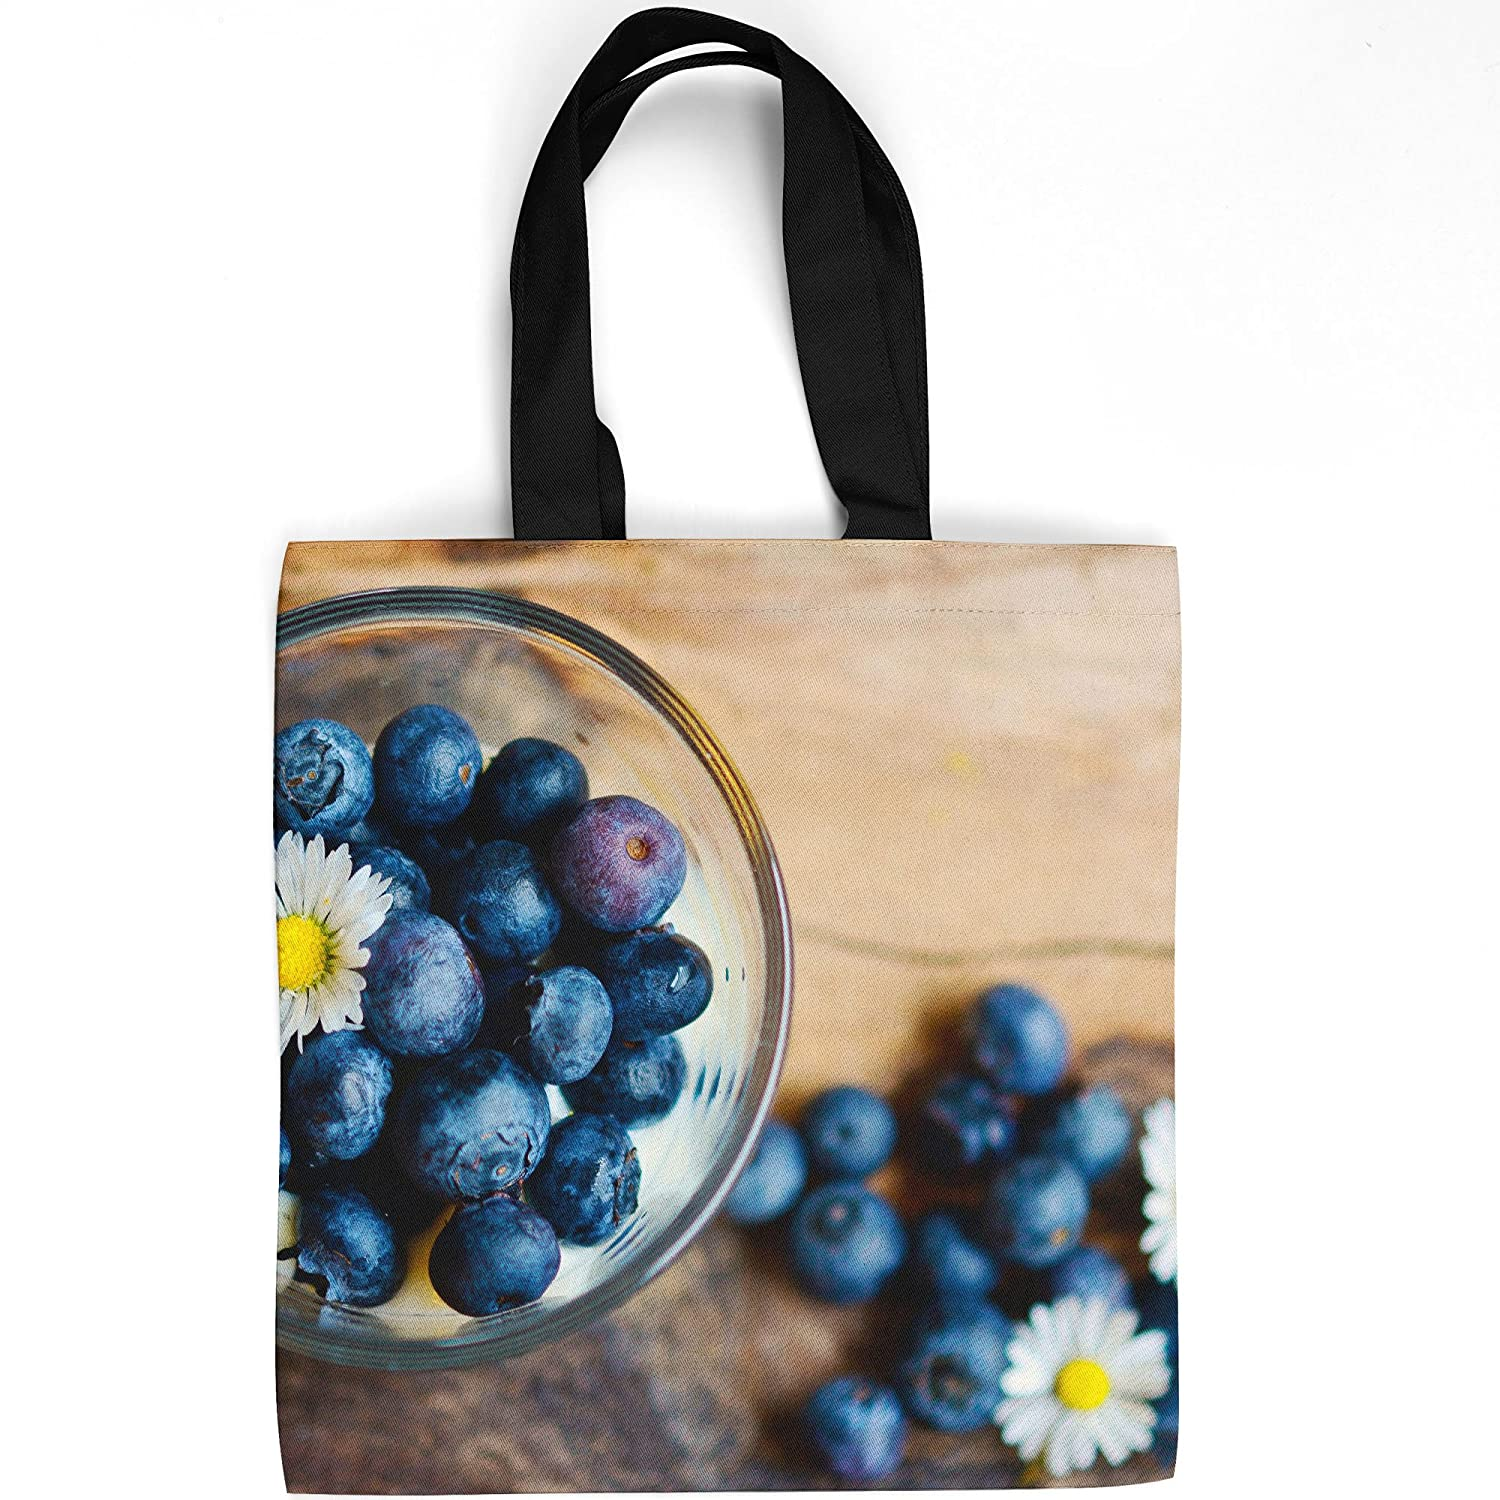 55515775bd8 Amazon.com: Westlake Art - Fruit Blueberry - Tote Bag - Picture Photography  Shopping Gym Work - 16x16 Inch (D41D8): Shoes